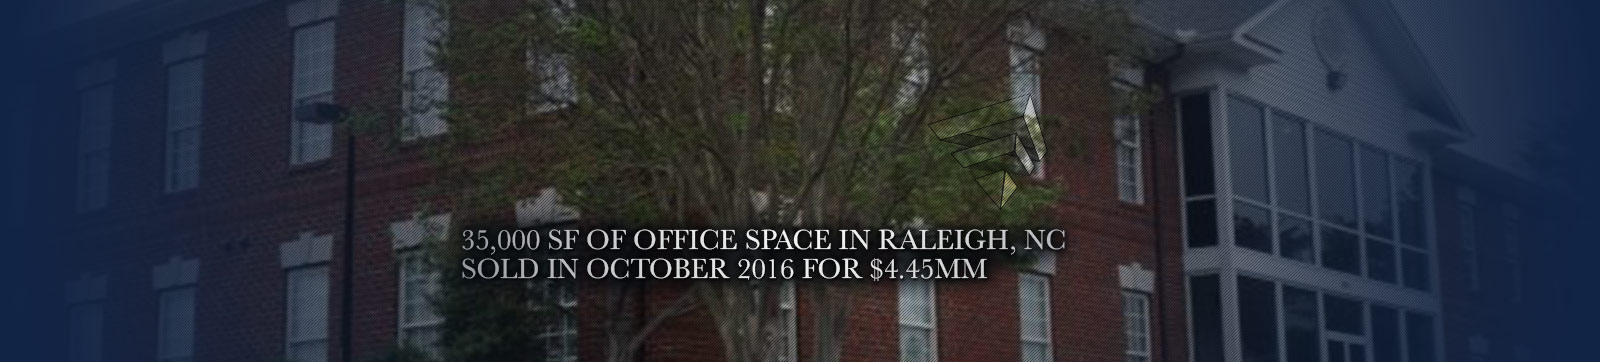 35,000 SF Office Space in Raleigh, NC